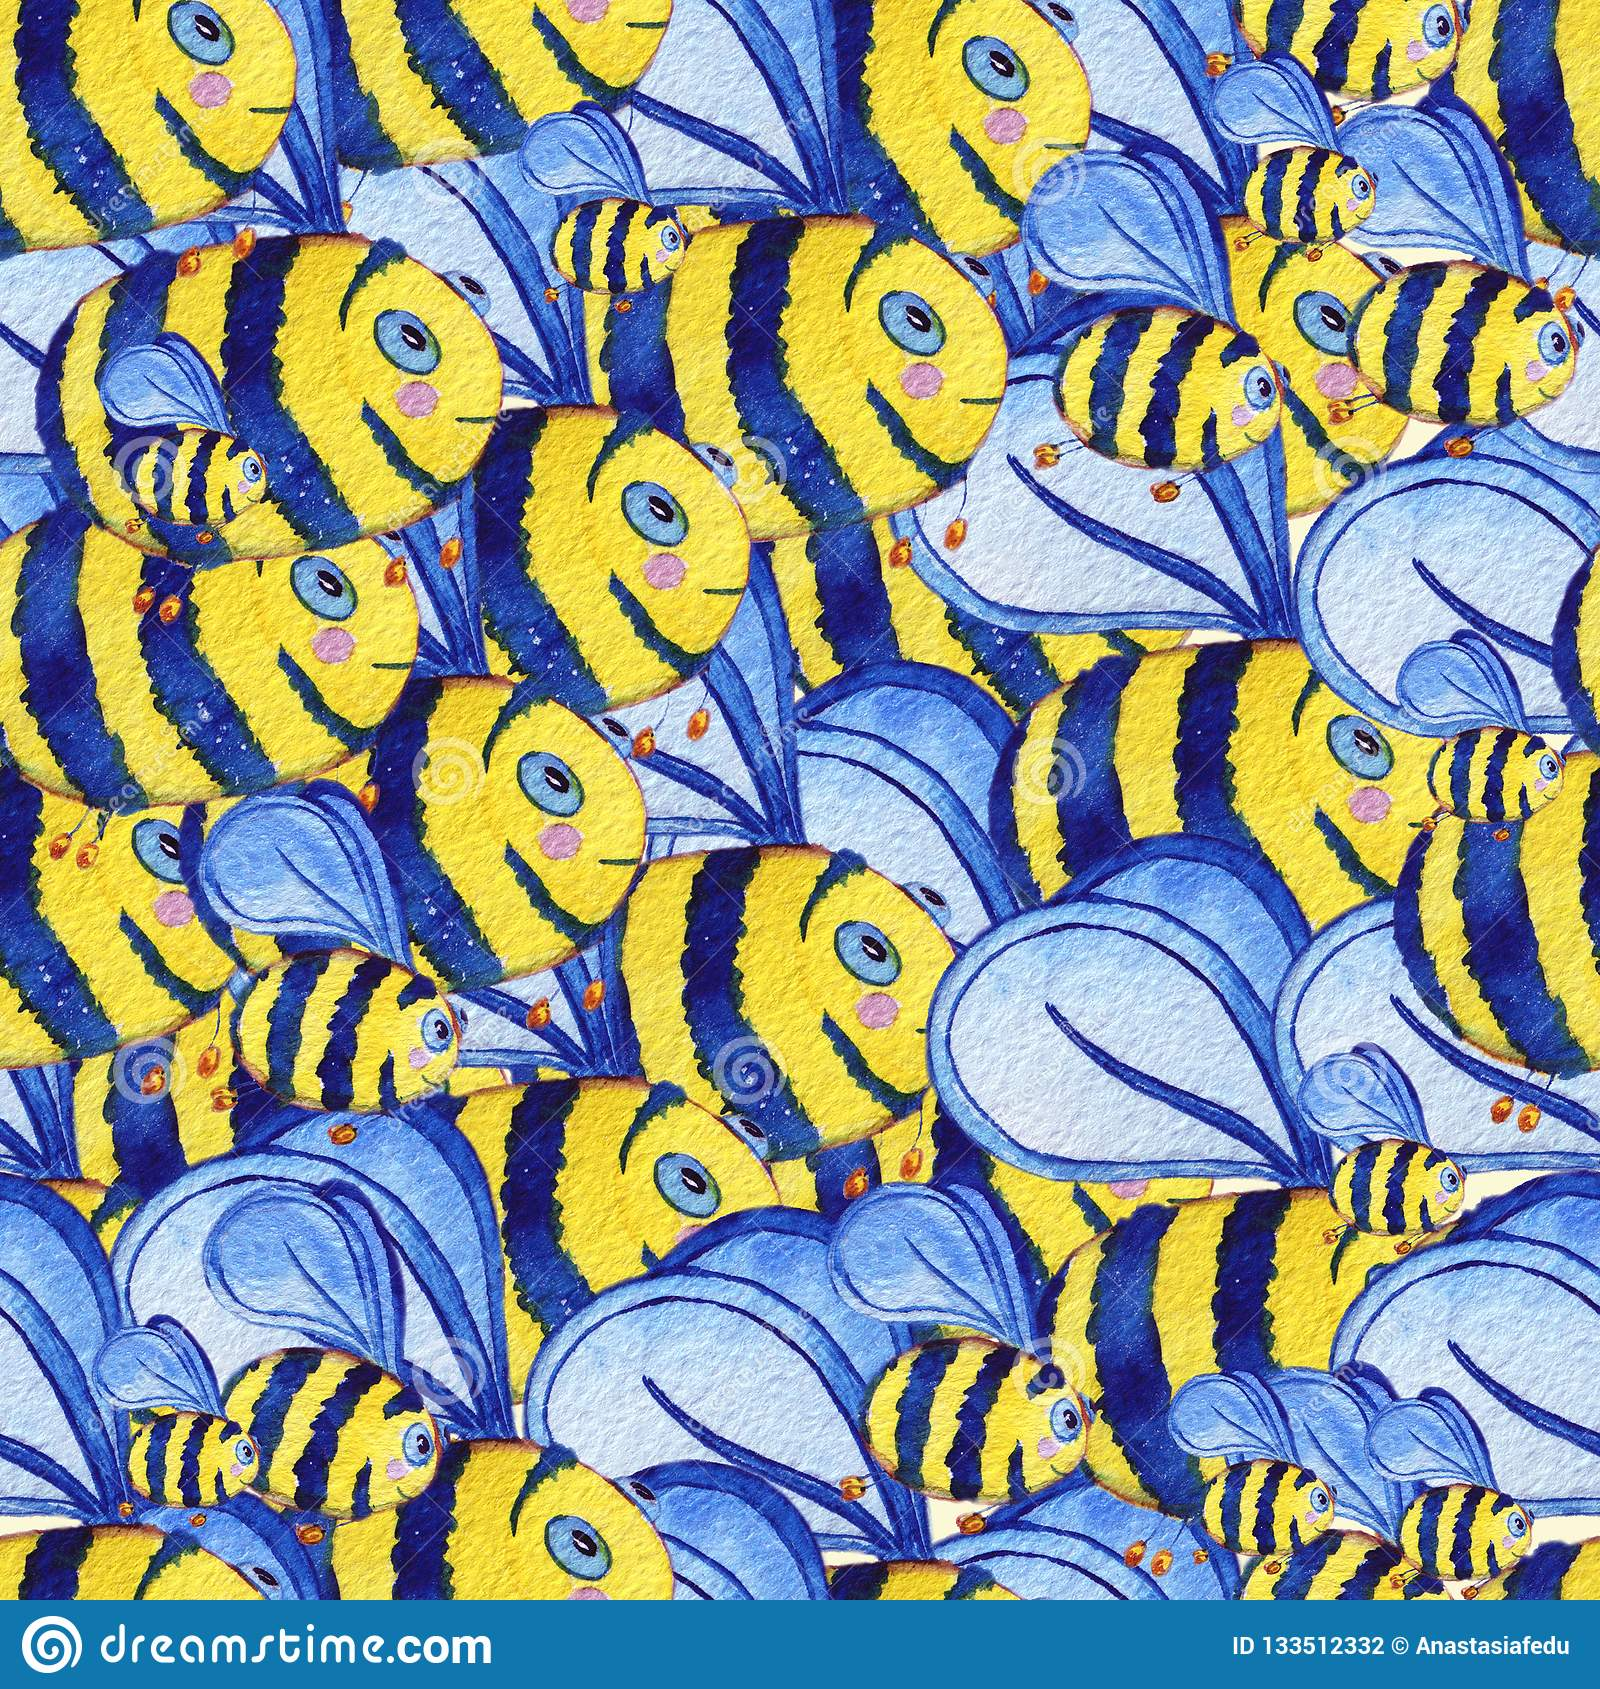 Watercolor hand drawn seamless pattern with bees